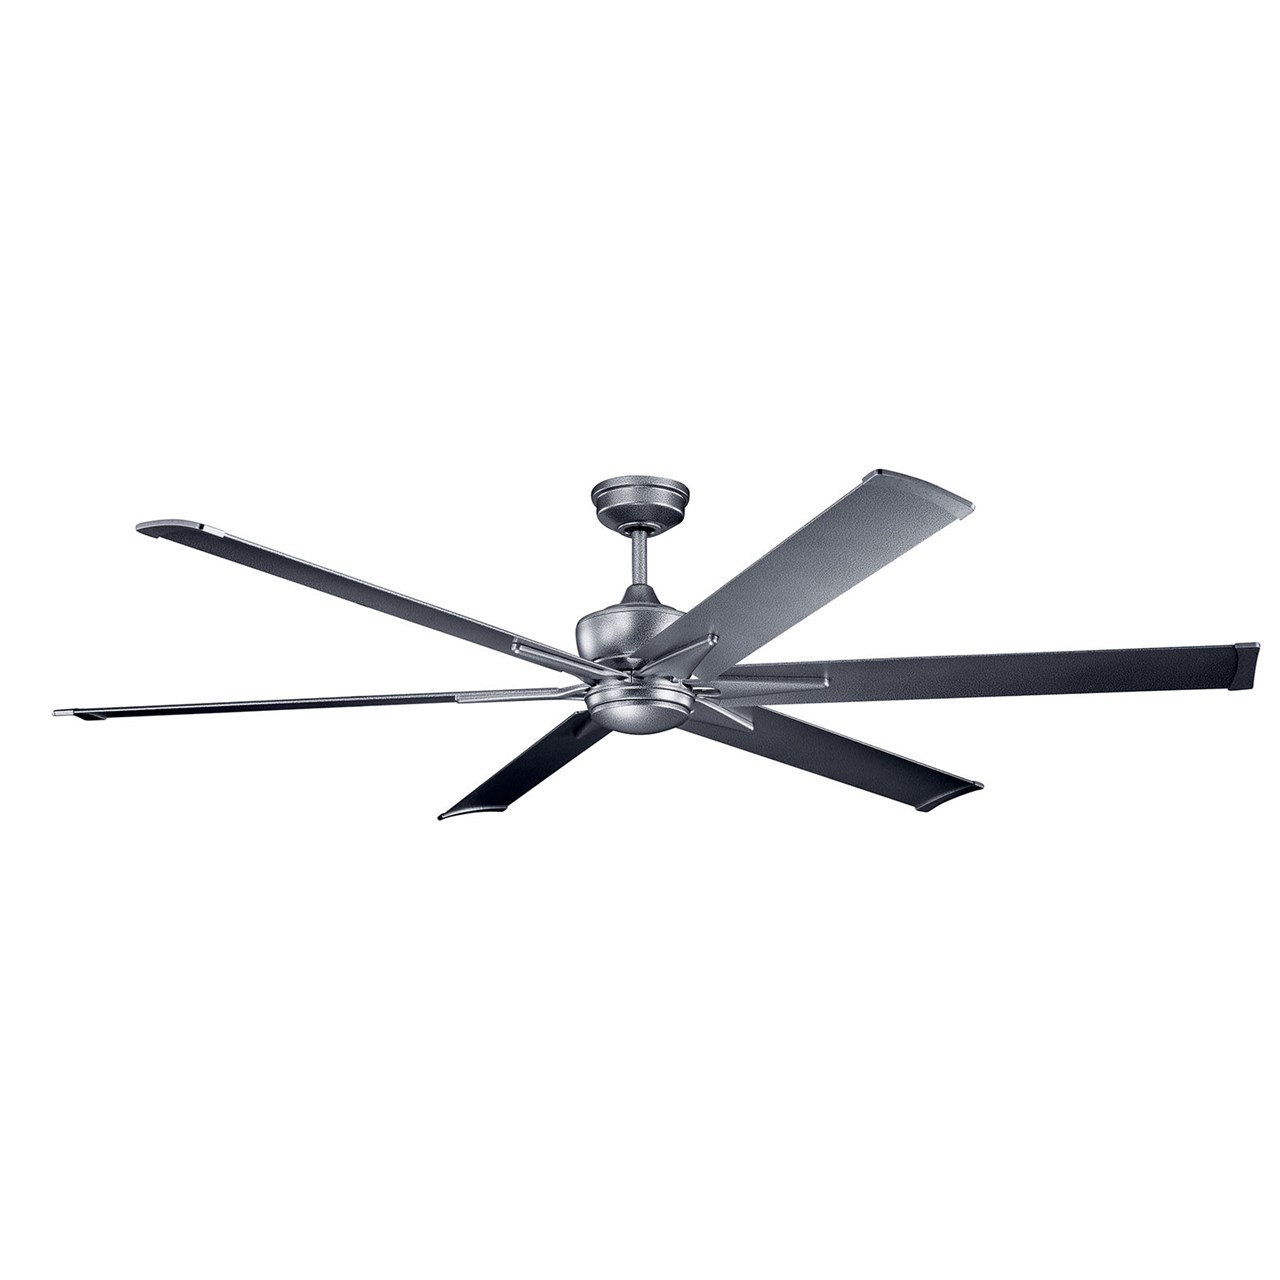 "Szeplo™ II LED 80"" Fan Weathered Steel"